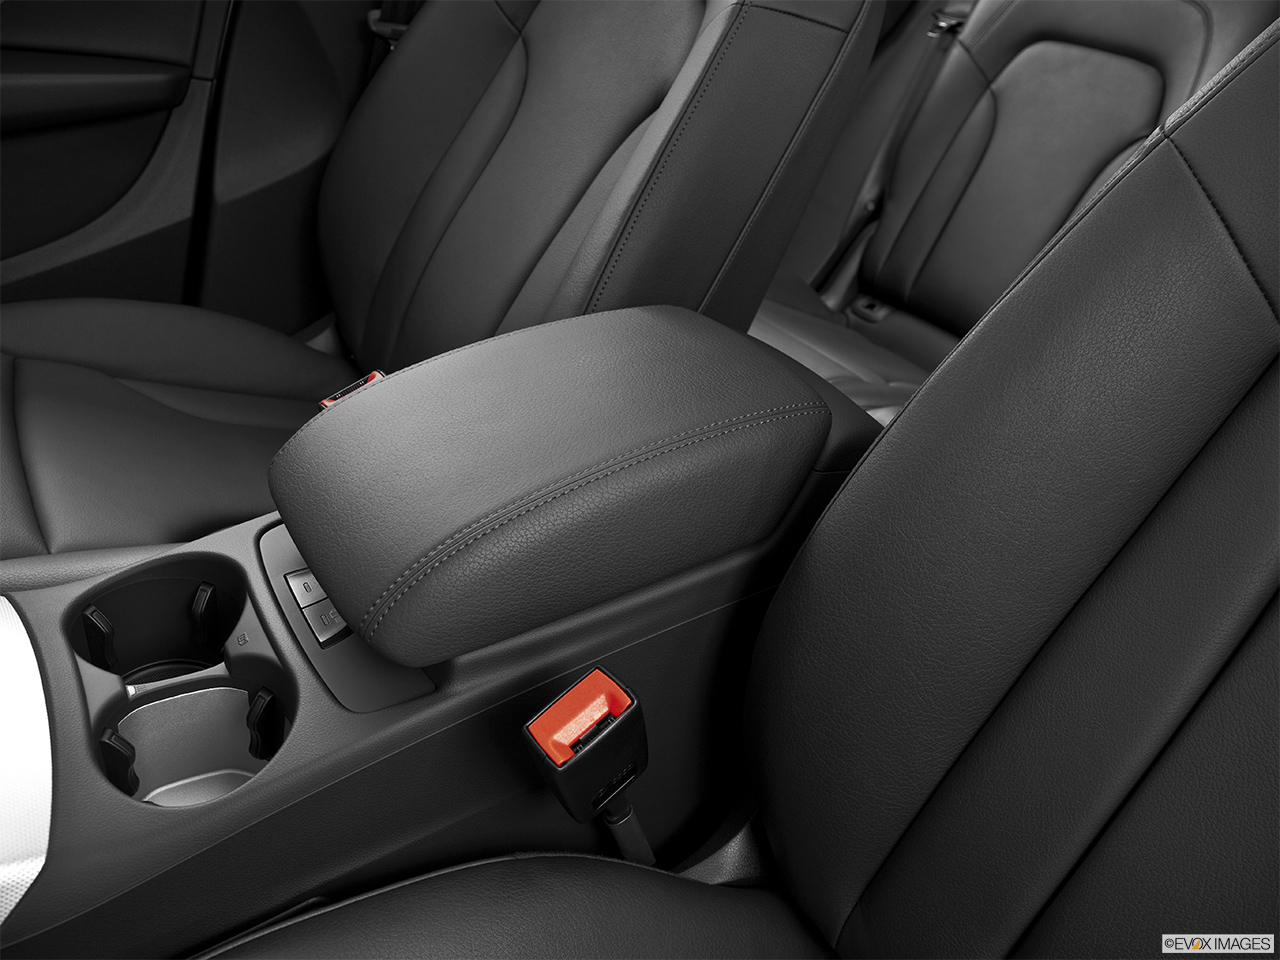 2014 Audi Q5 Hybrid 2.0 TFSI Prestige Front center console with closed lid, from driver's side looking down